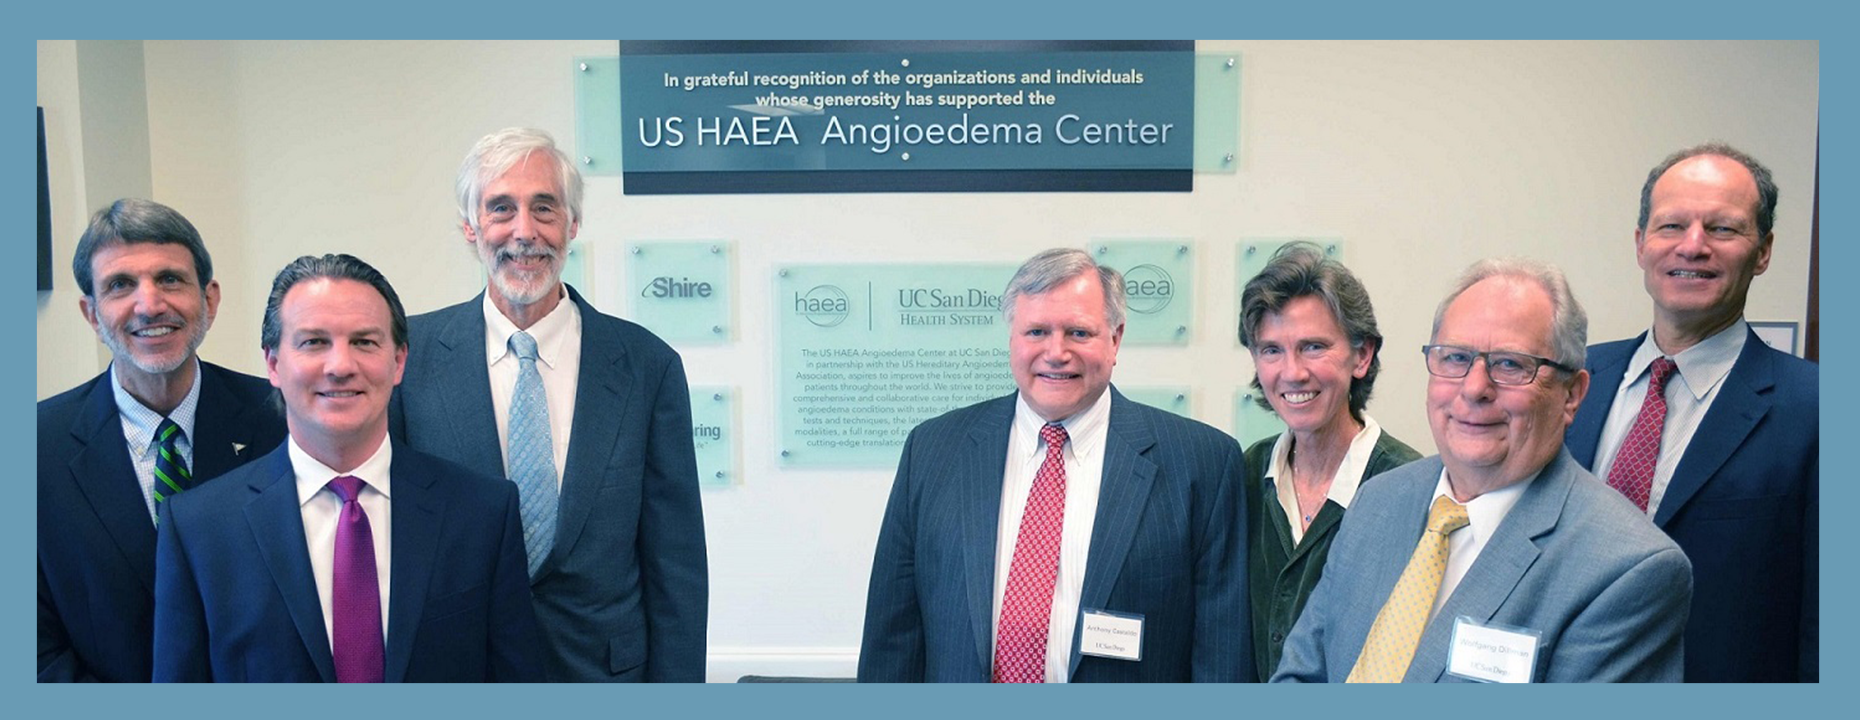 US HAEA Angioedema Center